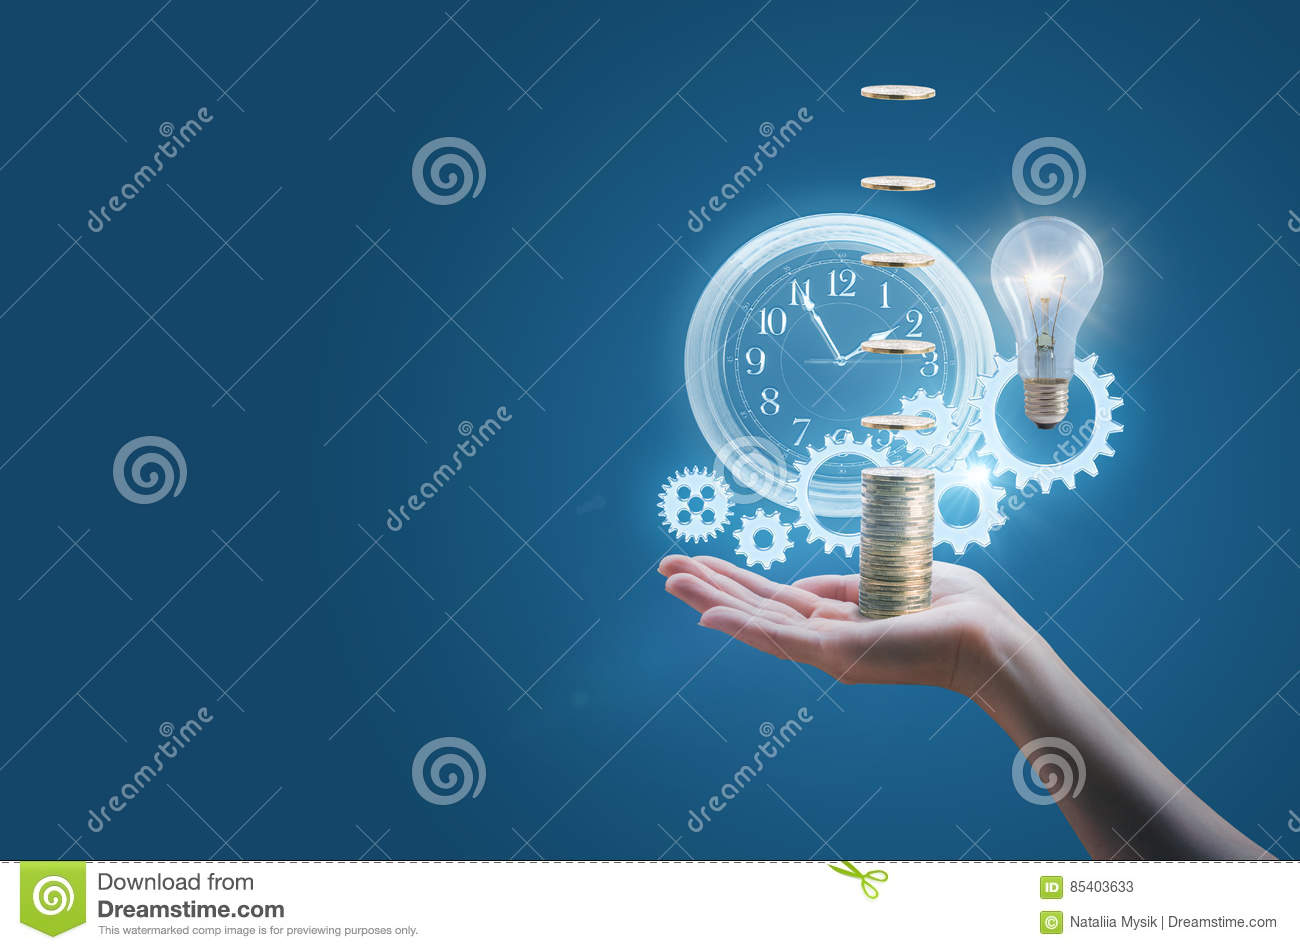 Download Business Woman In The Hand Of A Clock Gears Money And The Lamp Symbolizes The Effective Implementation. Stock Image - Image of element, gear: 85403633